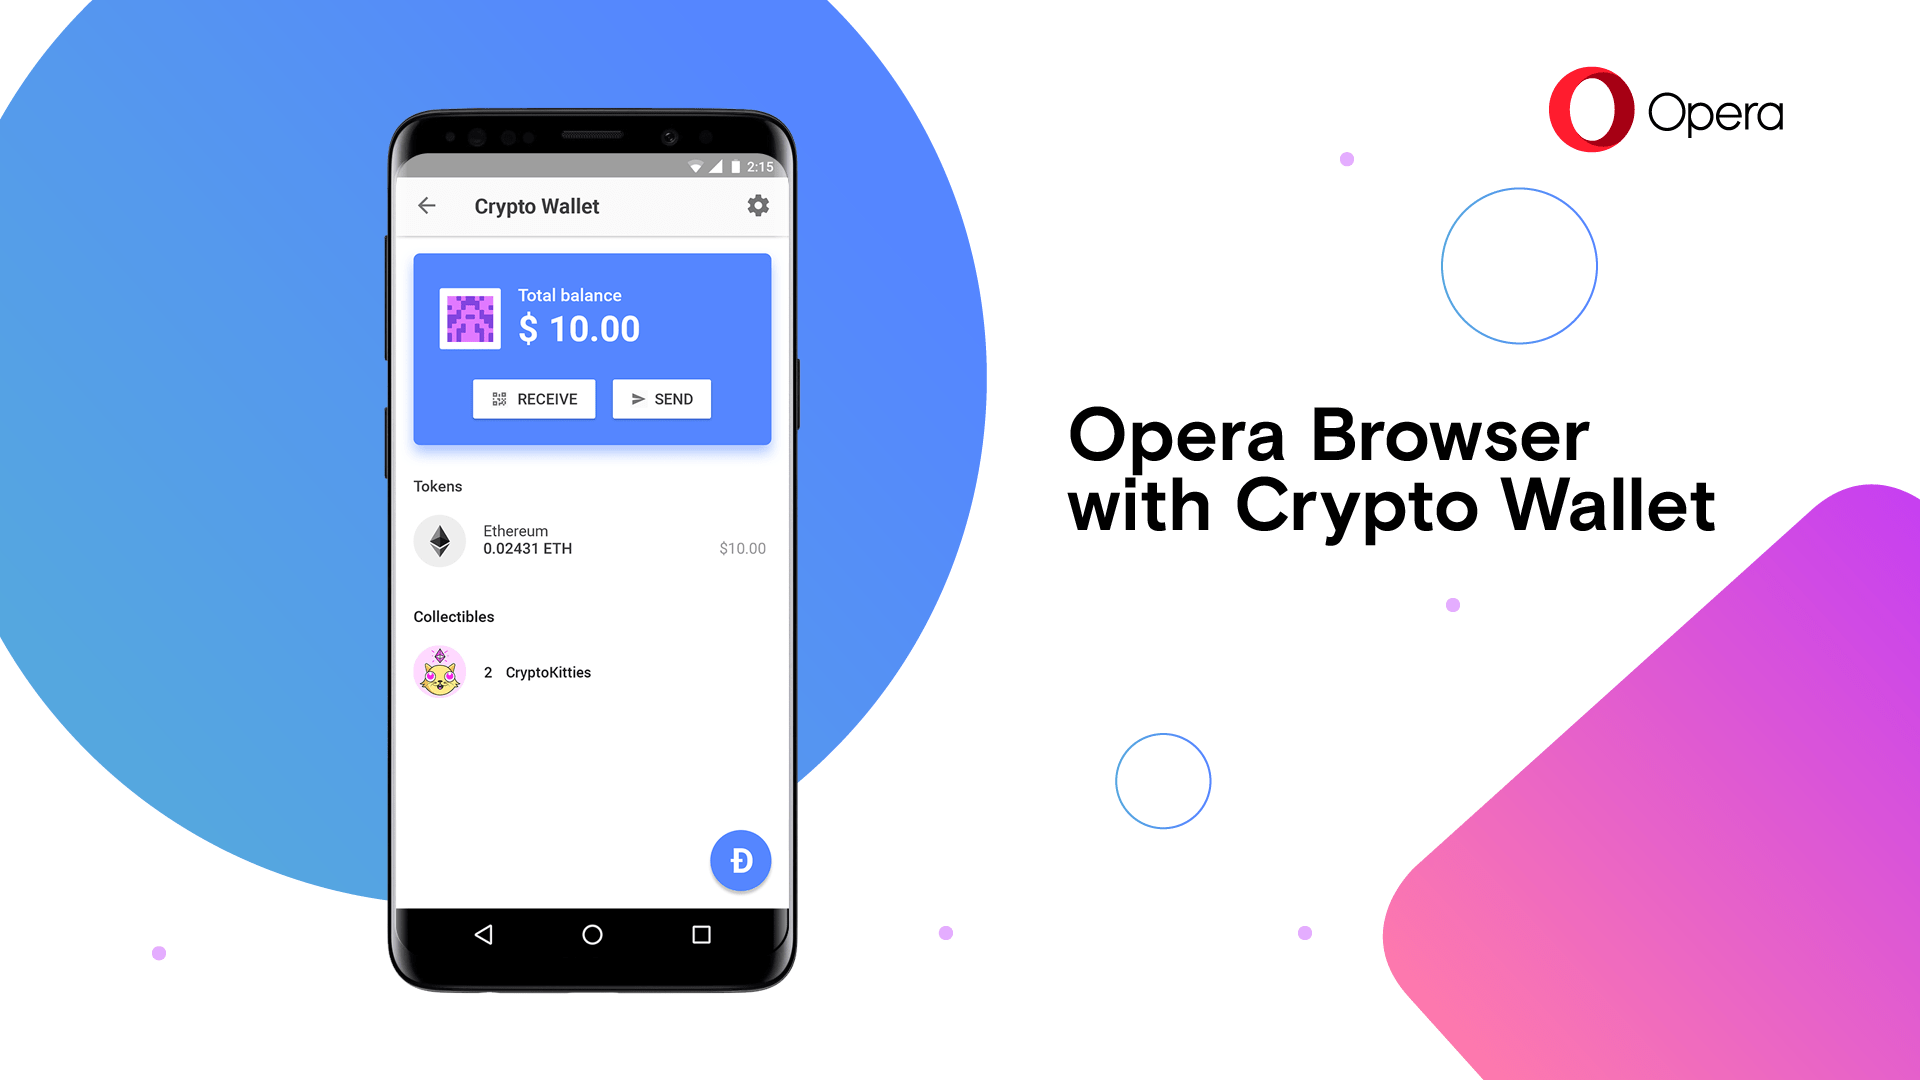 Browser Opera Opera Becomes First Major Browser With Built In Crypto Wallet